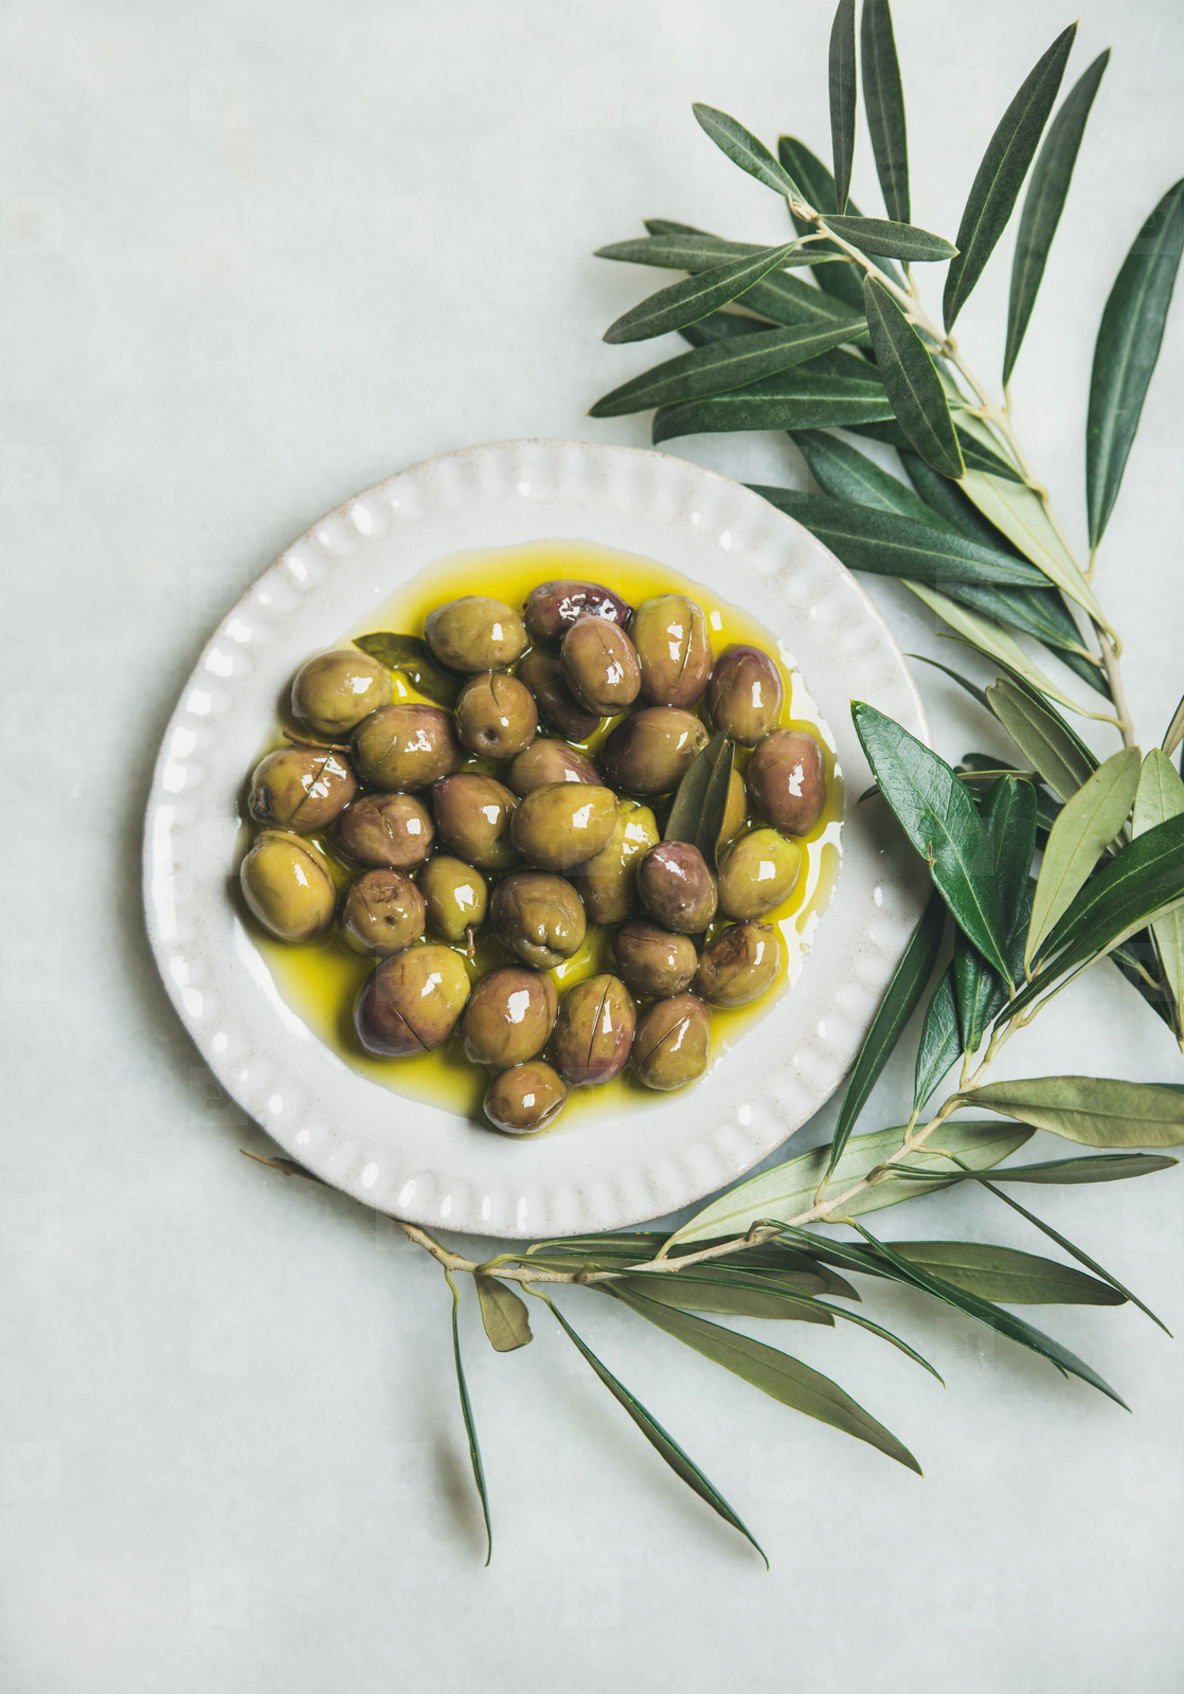 Pickled green olives and olive tree branch over marble background